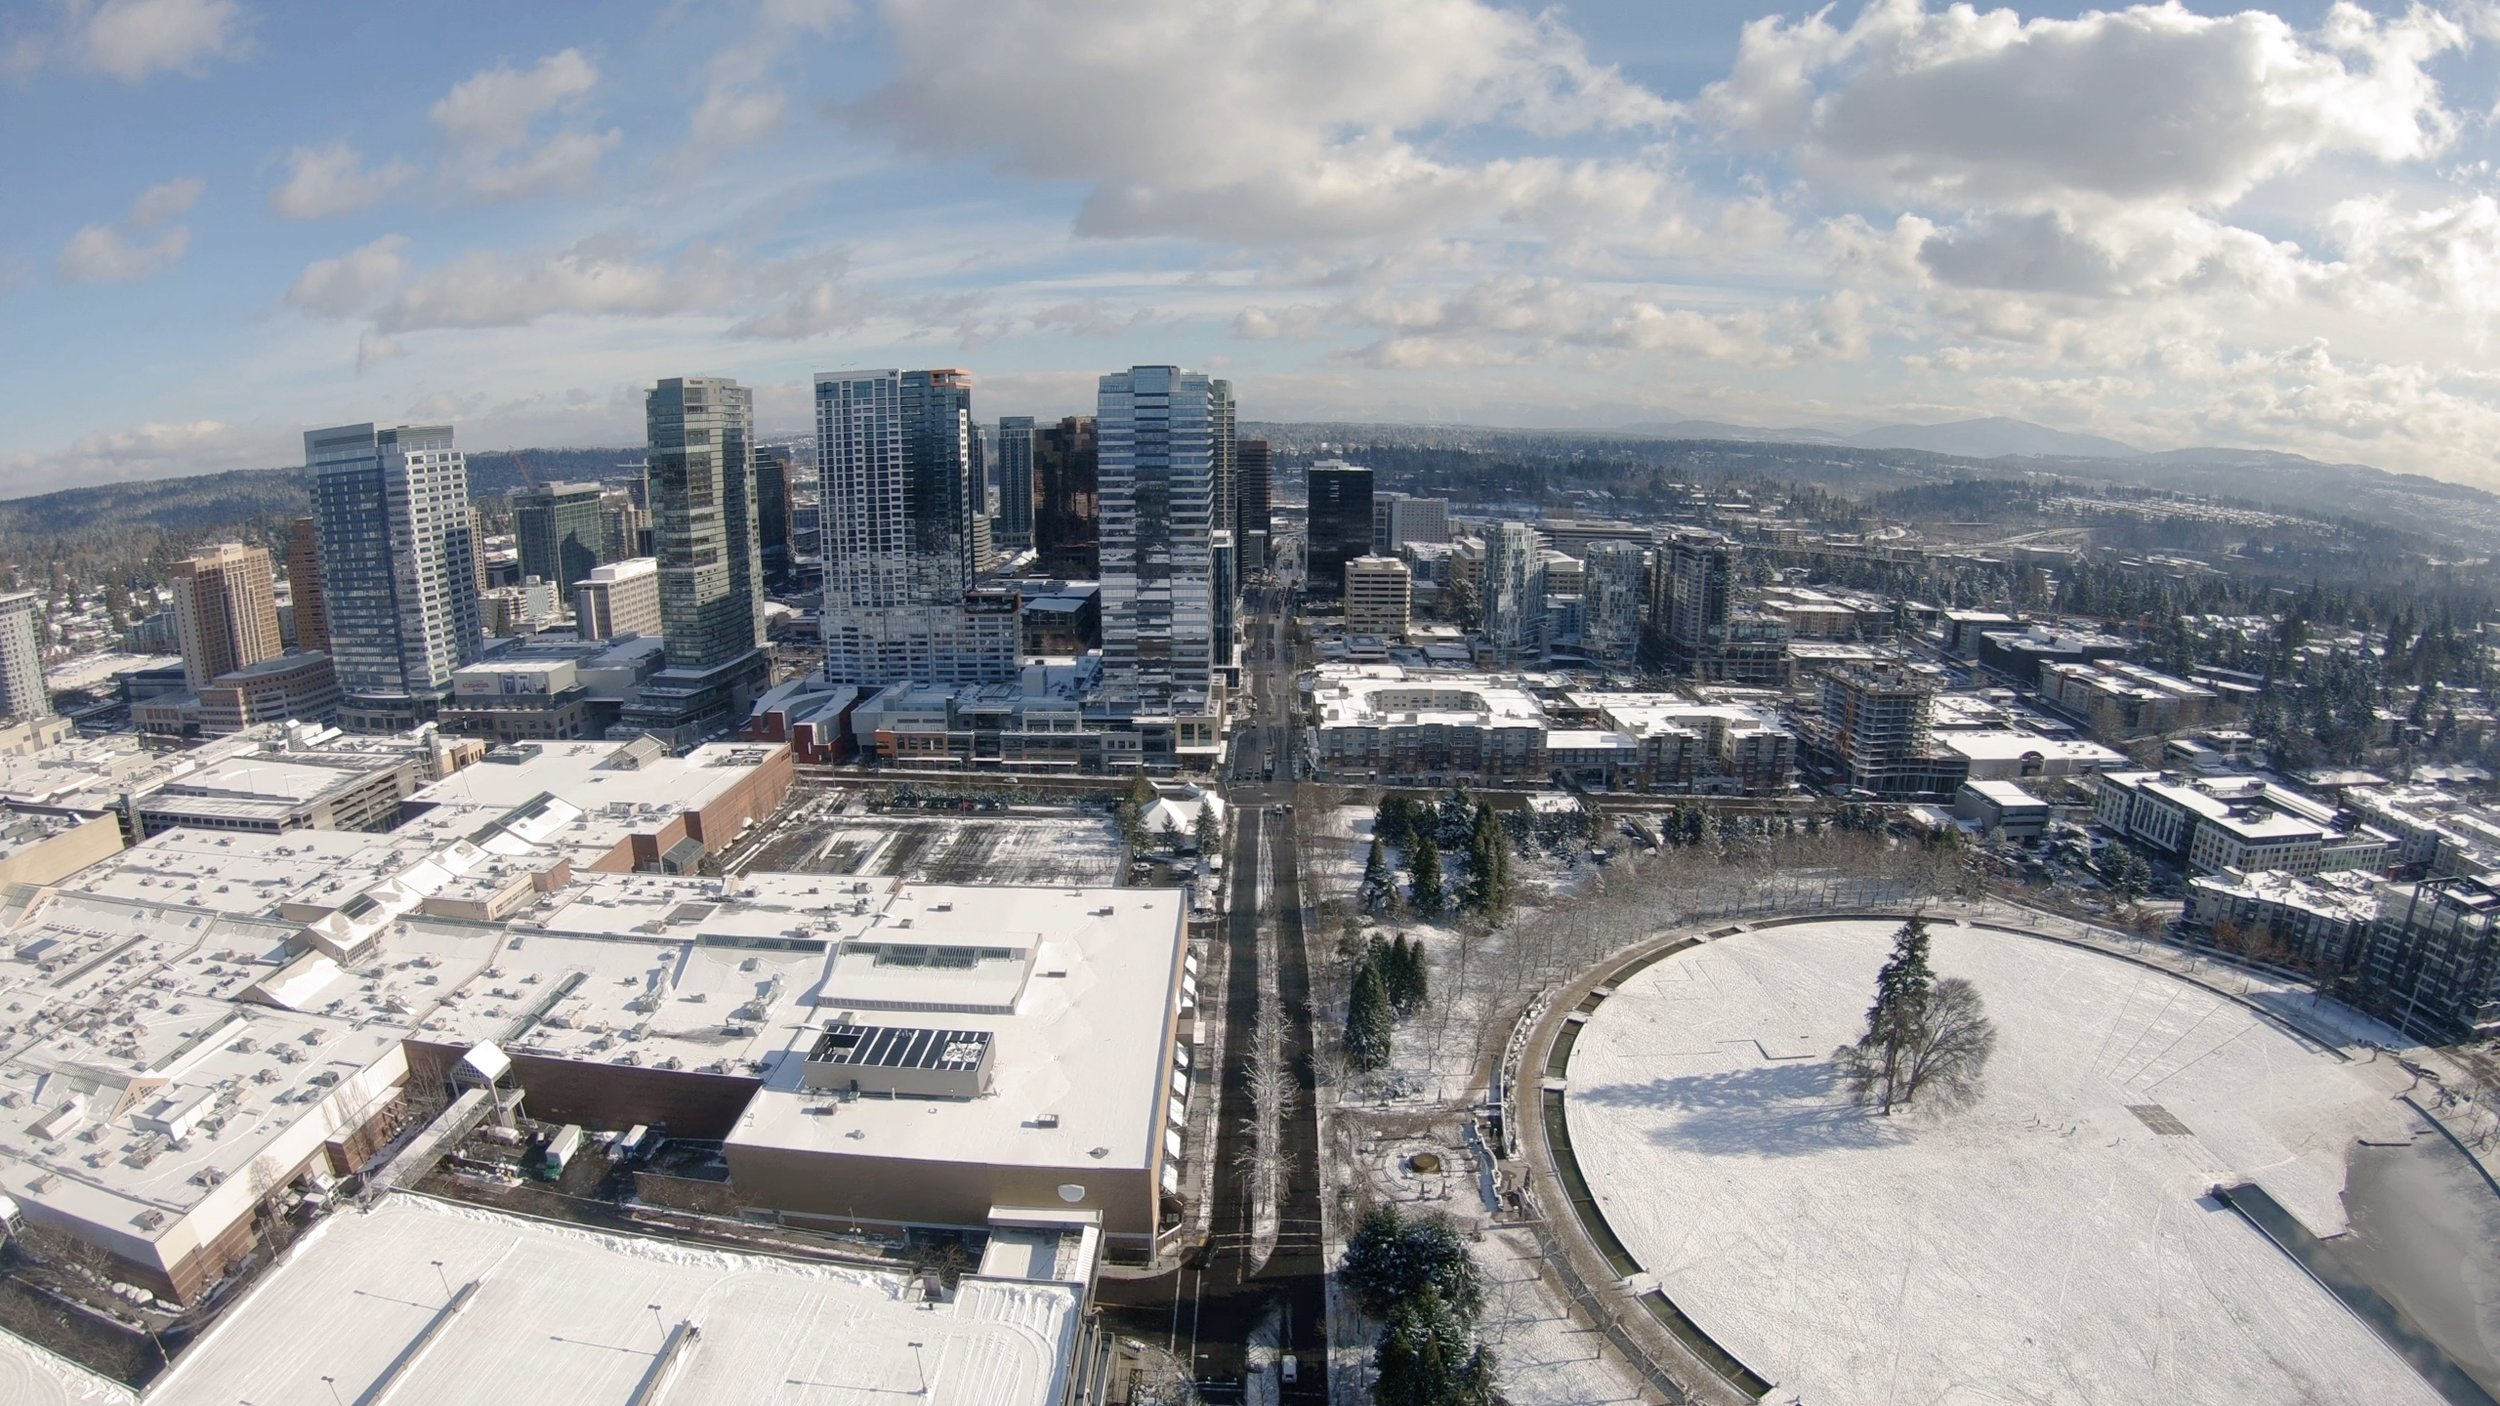 Bellevue_Park_Winter_Snow_Aerials.jpg